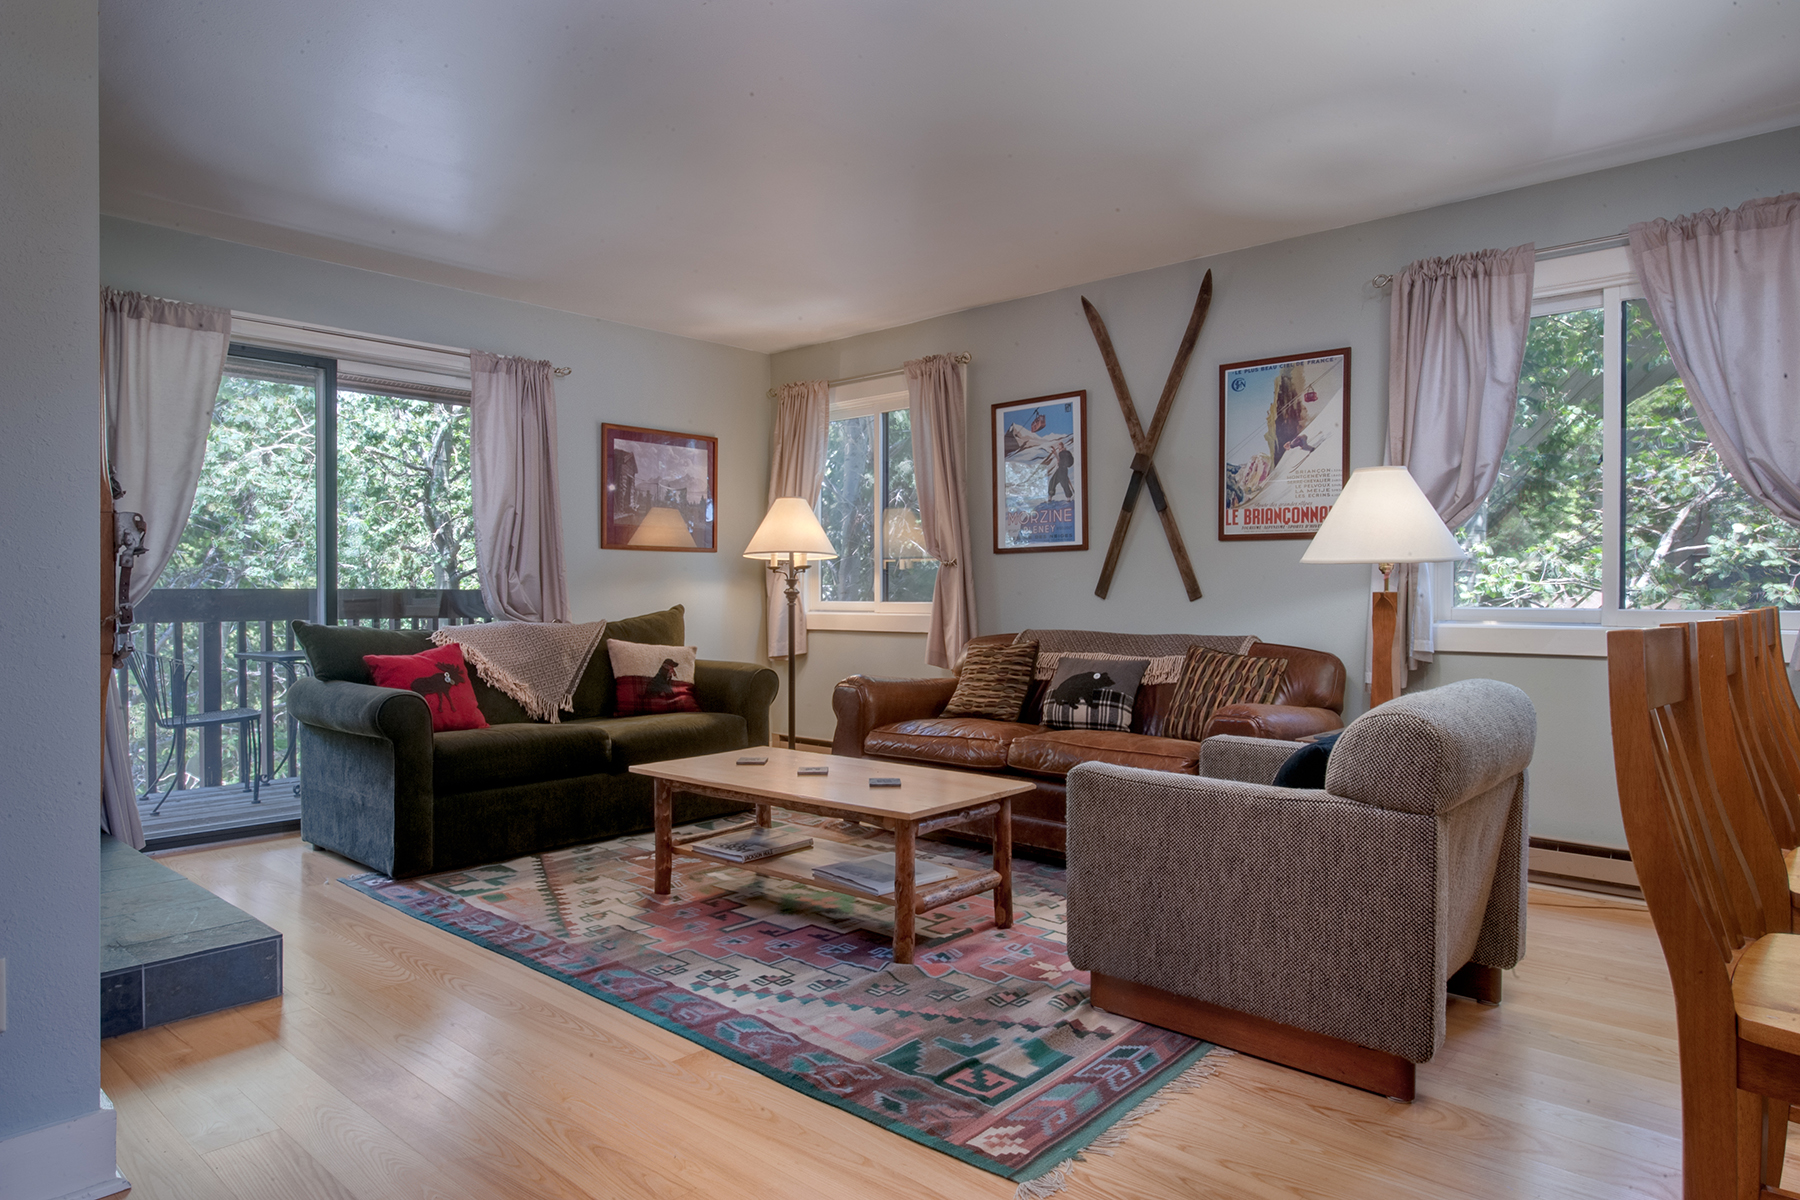 Condominium for Sale at Turn-Key Sleeping Indian Condo 3680 W Michael Dr. #W-15-A, Teton Village, Wyoming, 83025 Jackson Hole, United States